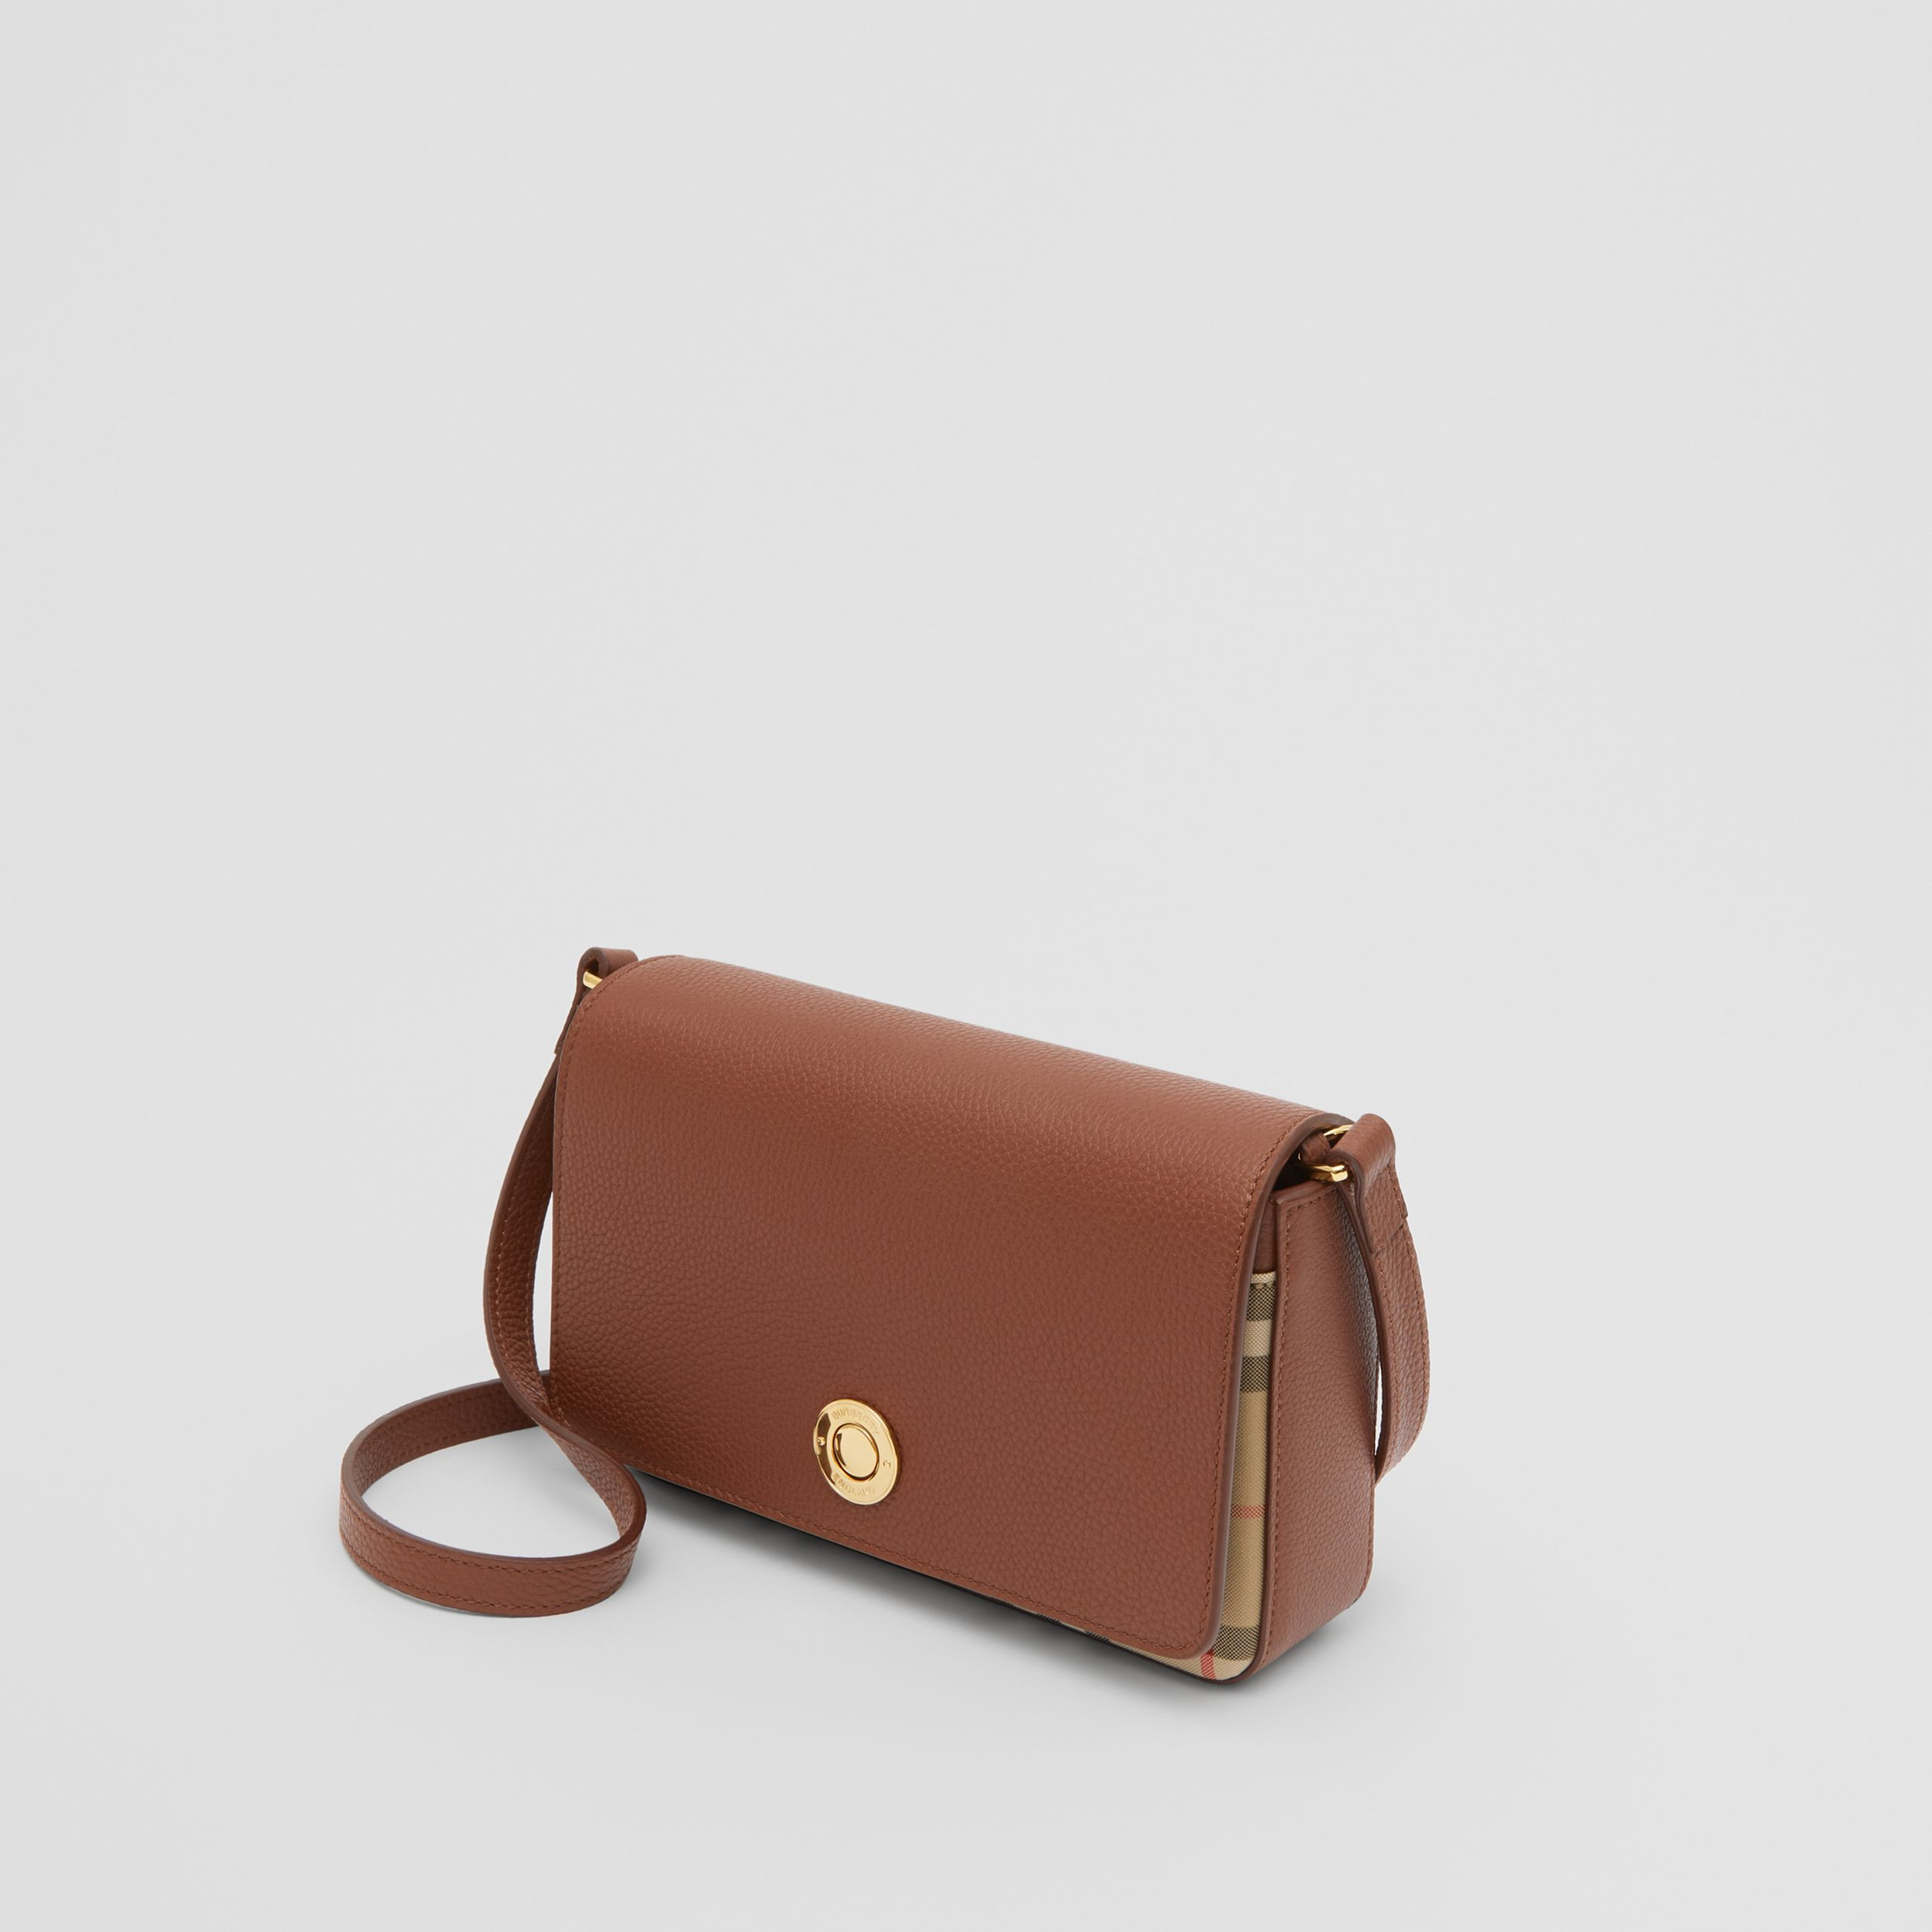 Small Leather and Vintage Check Crossbody Bag in Tan - Women | Burberry - 4